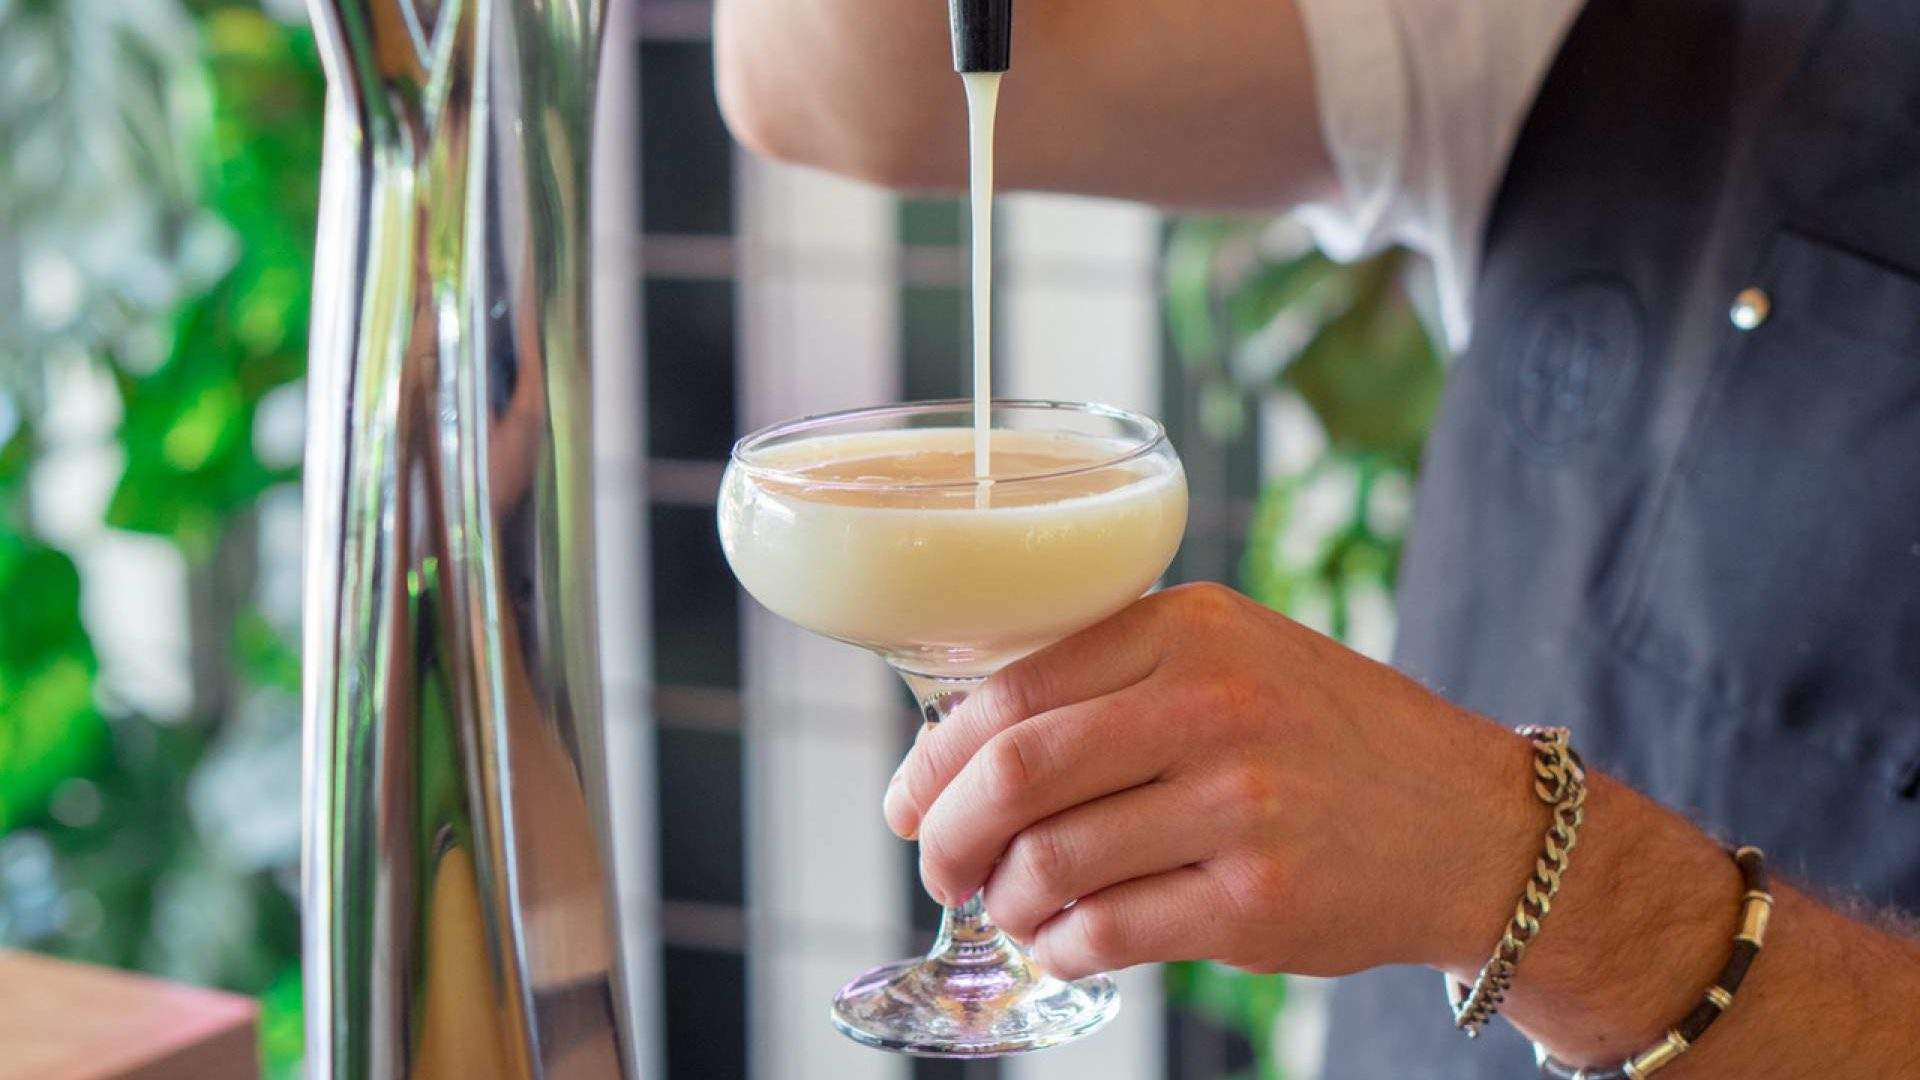 This New Auckland Service Is Offering Readymade Cocktails on Tap